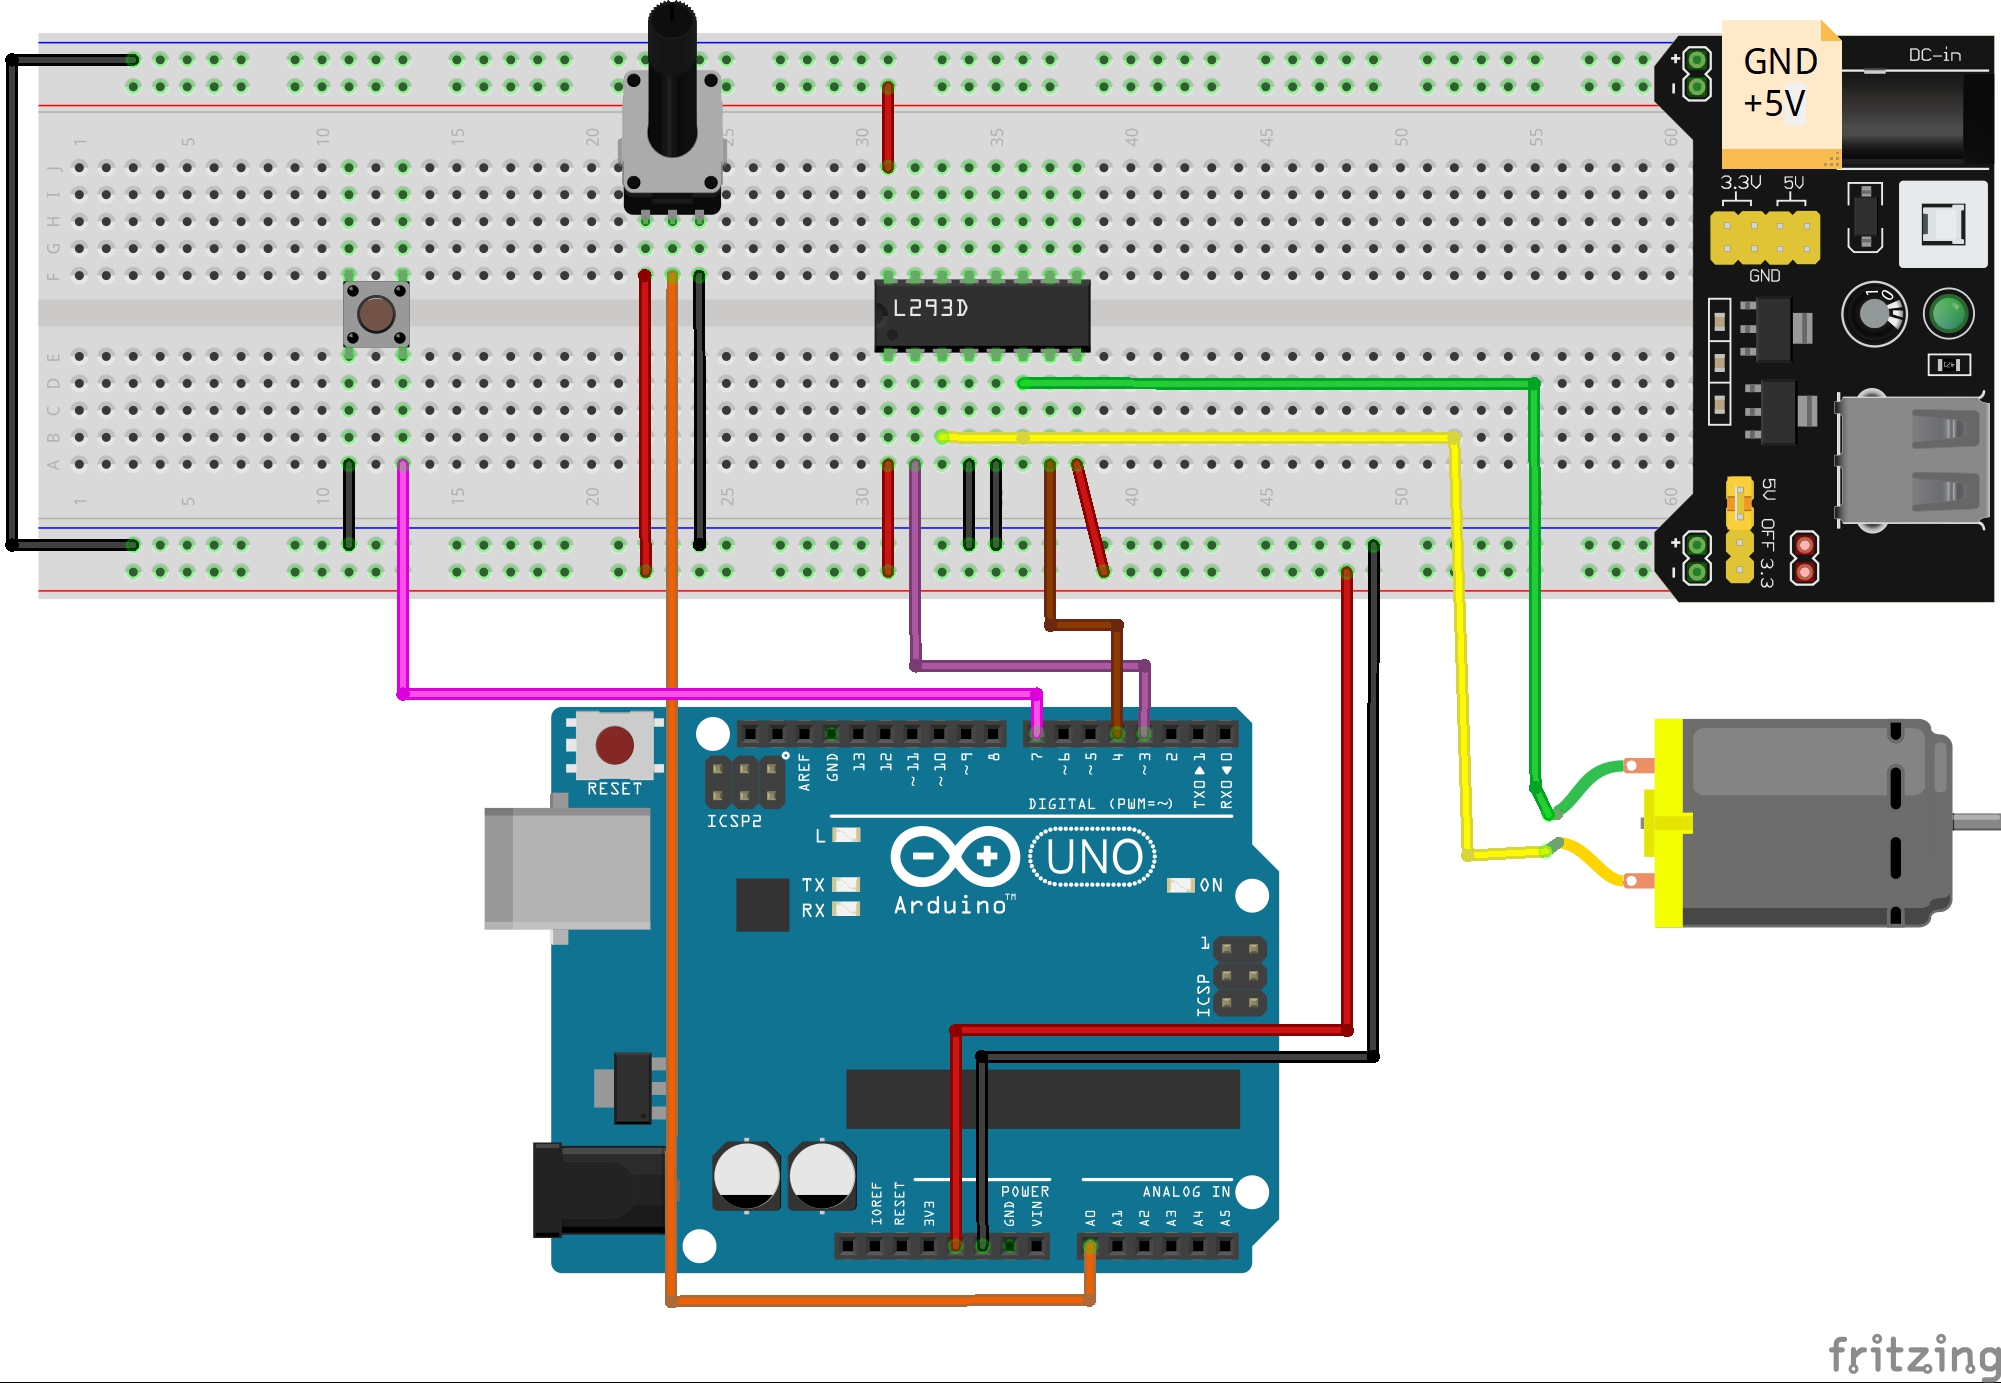 Arduino Lesson L293d With Dc Motor Schematic Together Parts Of An Board On This H Bridge Is Capable Driving Two Separate Motors So We Are Only Going To Use Half The Chip Pins 1 7 Can Be Left Disconnected